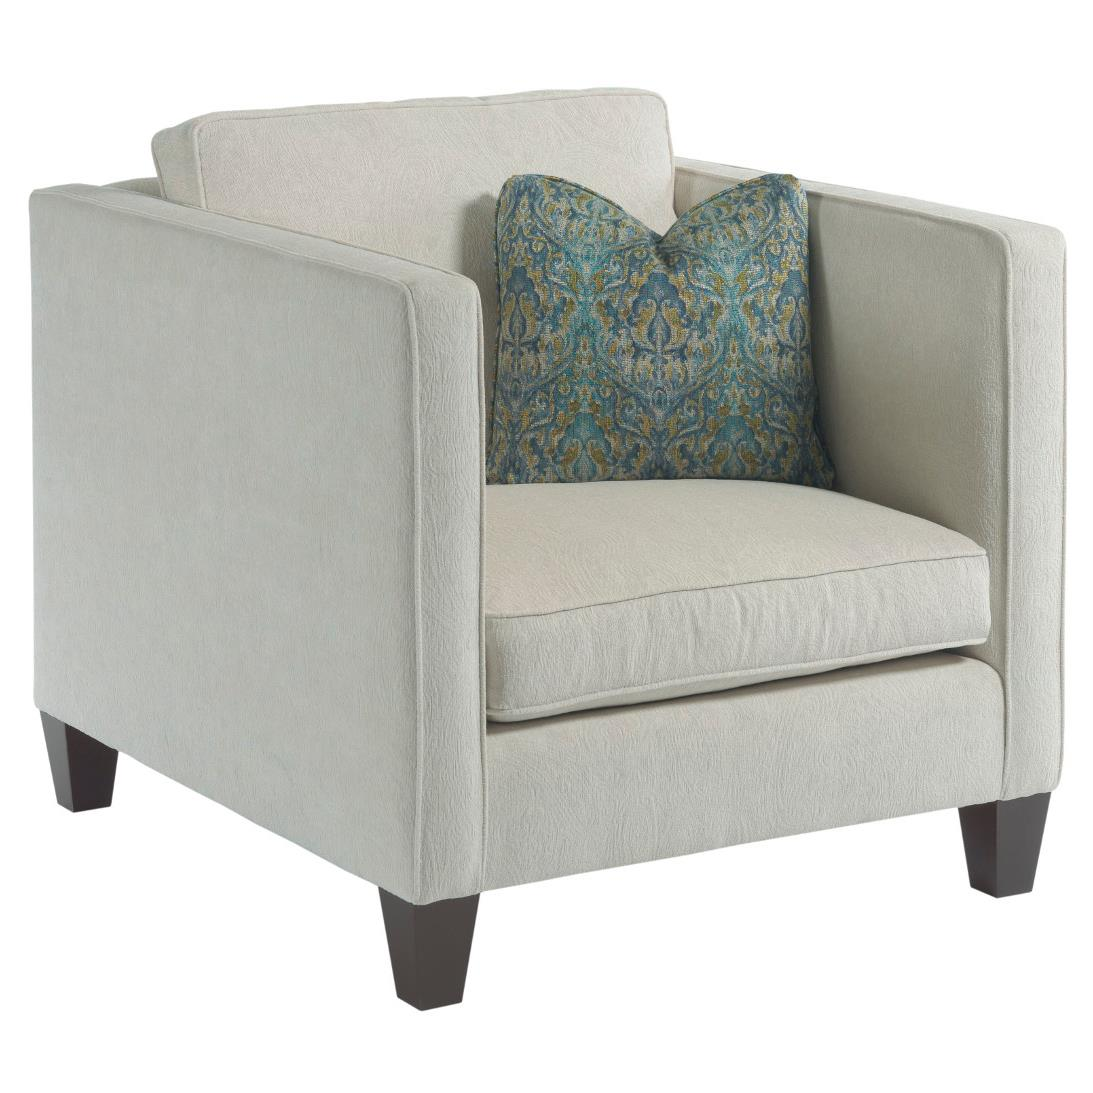 Sophia Chair by Kincaid Furniture at Lindy's Furniture Company